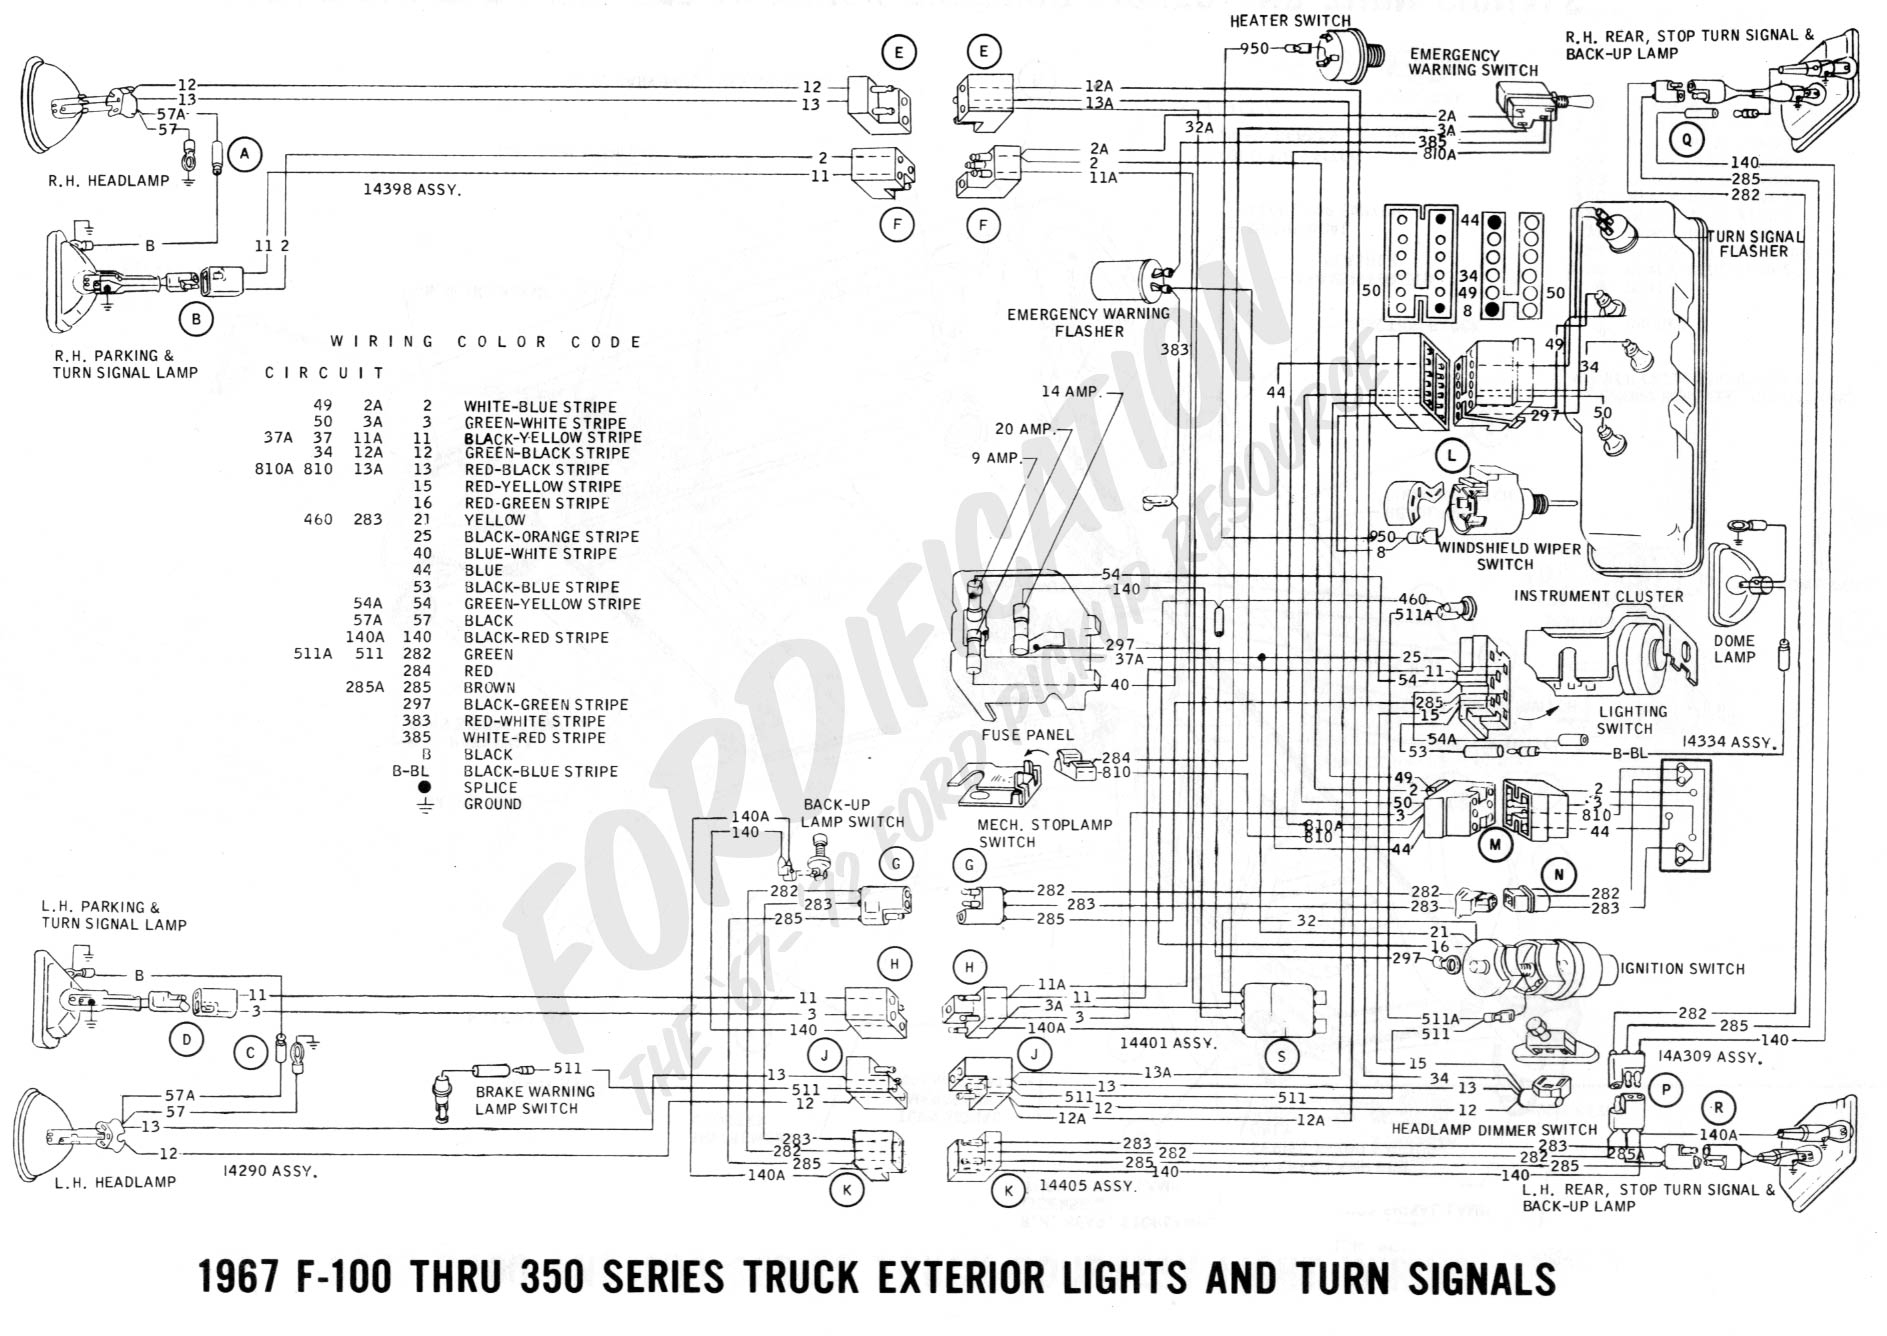 2001 Ford F350 Wiring Diagrams - Wiring Diagram - 2000 Ford F250 Trailer Wiring Harness Diagram